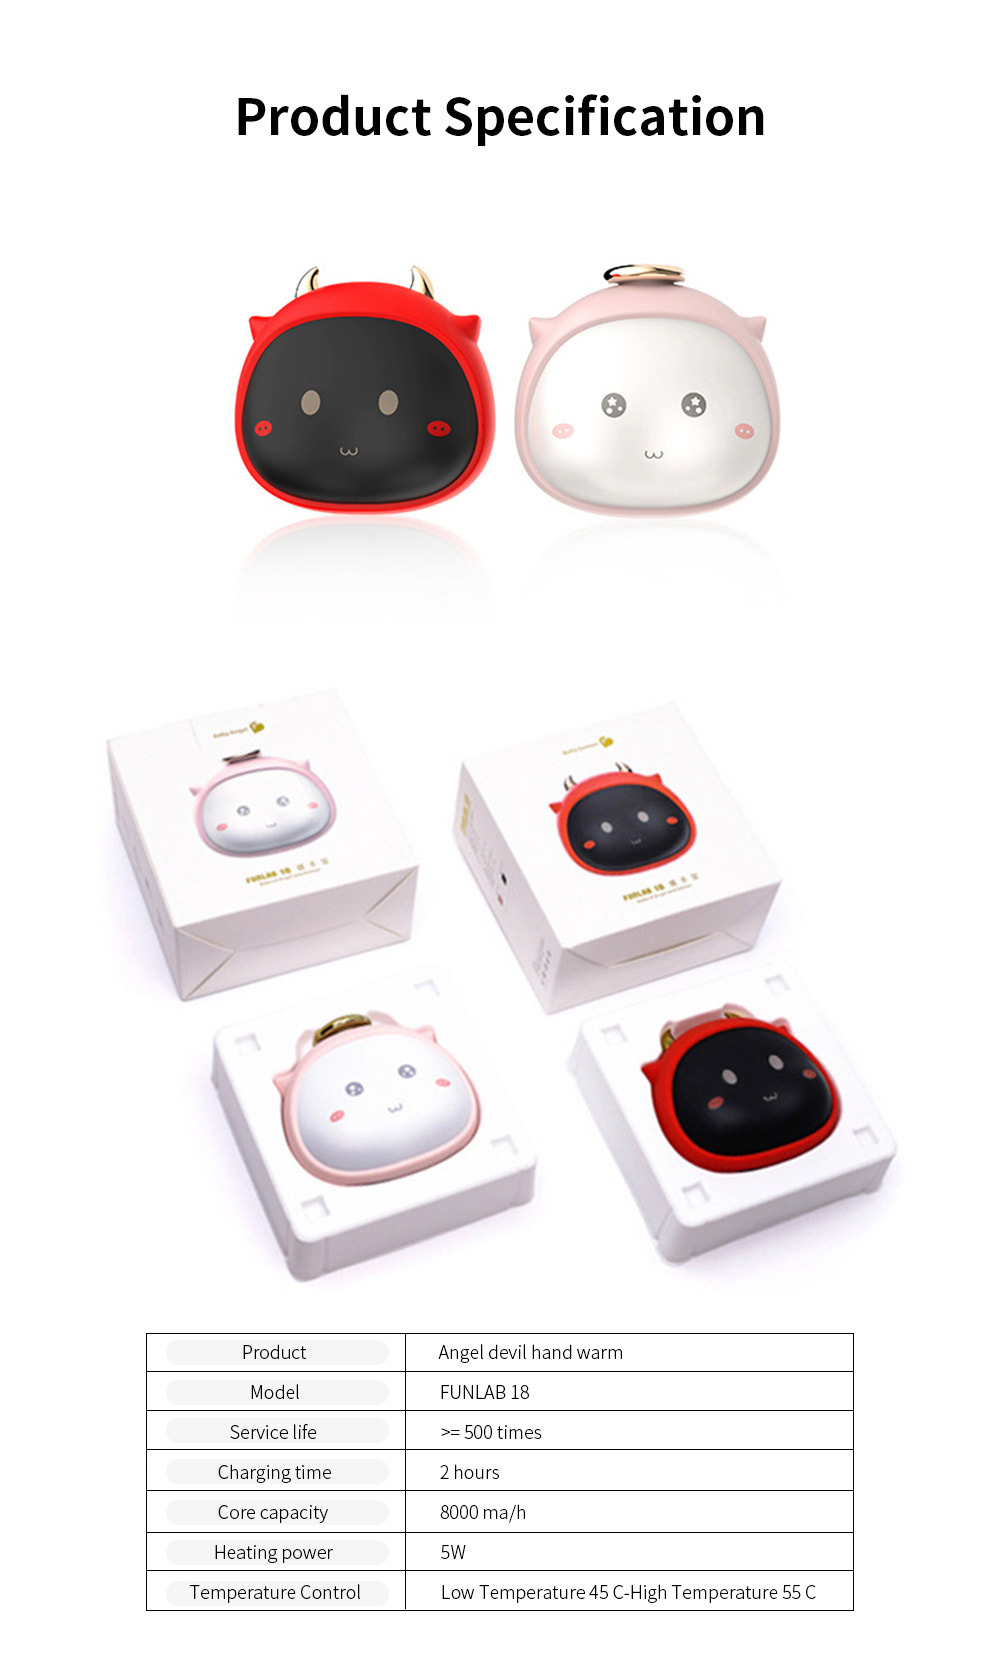 Portable Mini USB Charging Hand Warmer Power Supply Angel Demon Christmas Gifts Body Power for Cold Weather Heating 8